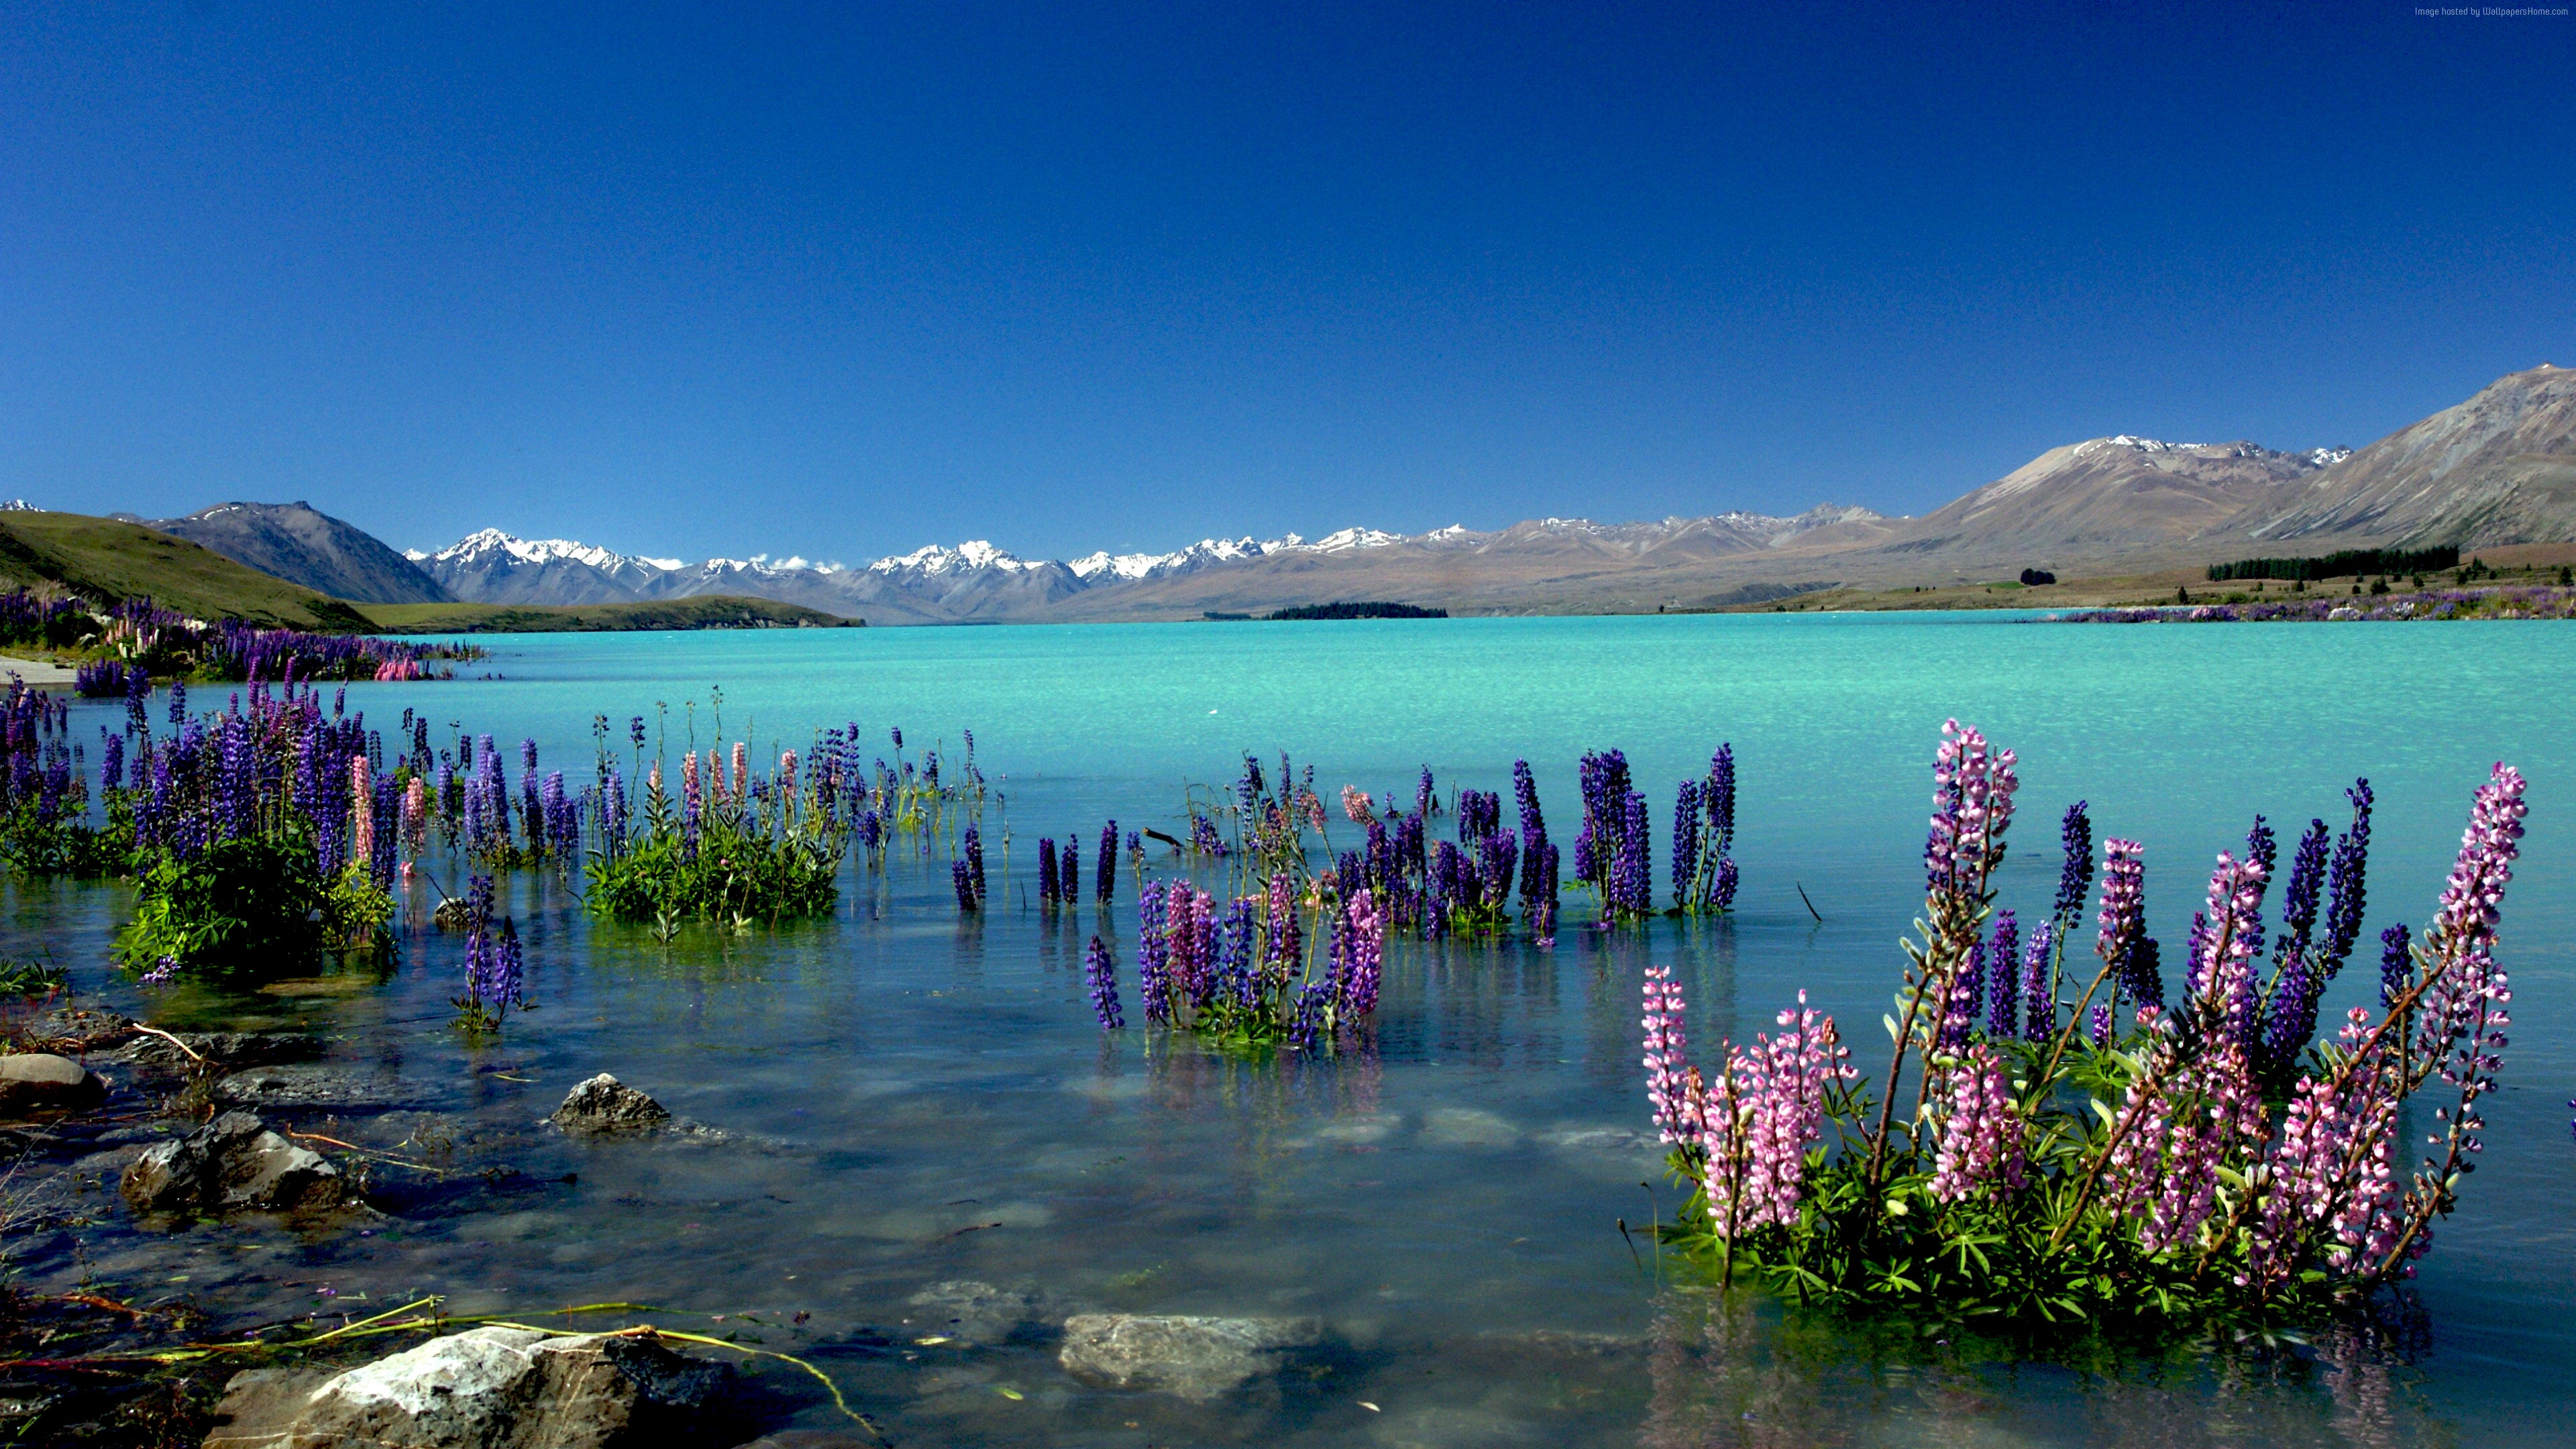 Wallpaper Lake Tekapo, New Zealand, mountains, 4k, Travel